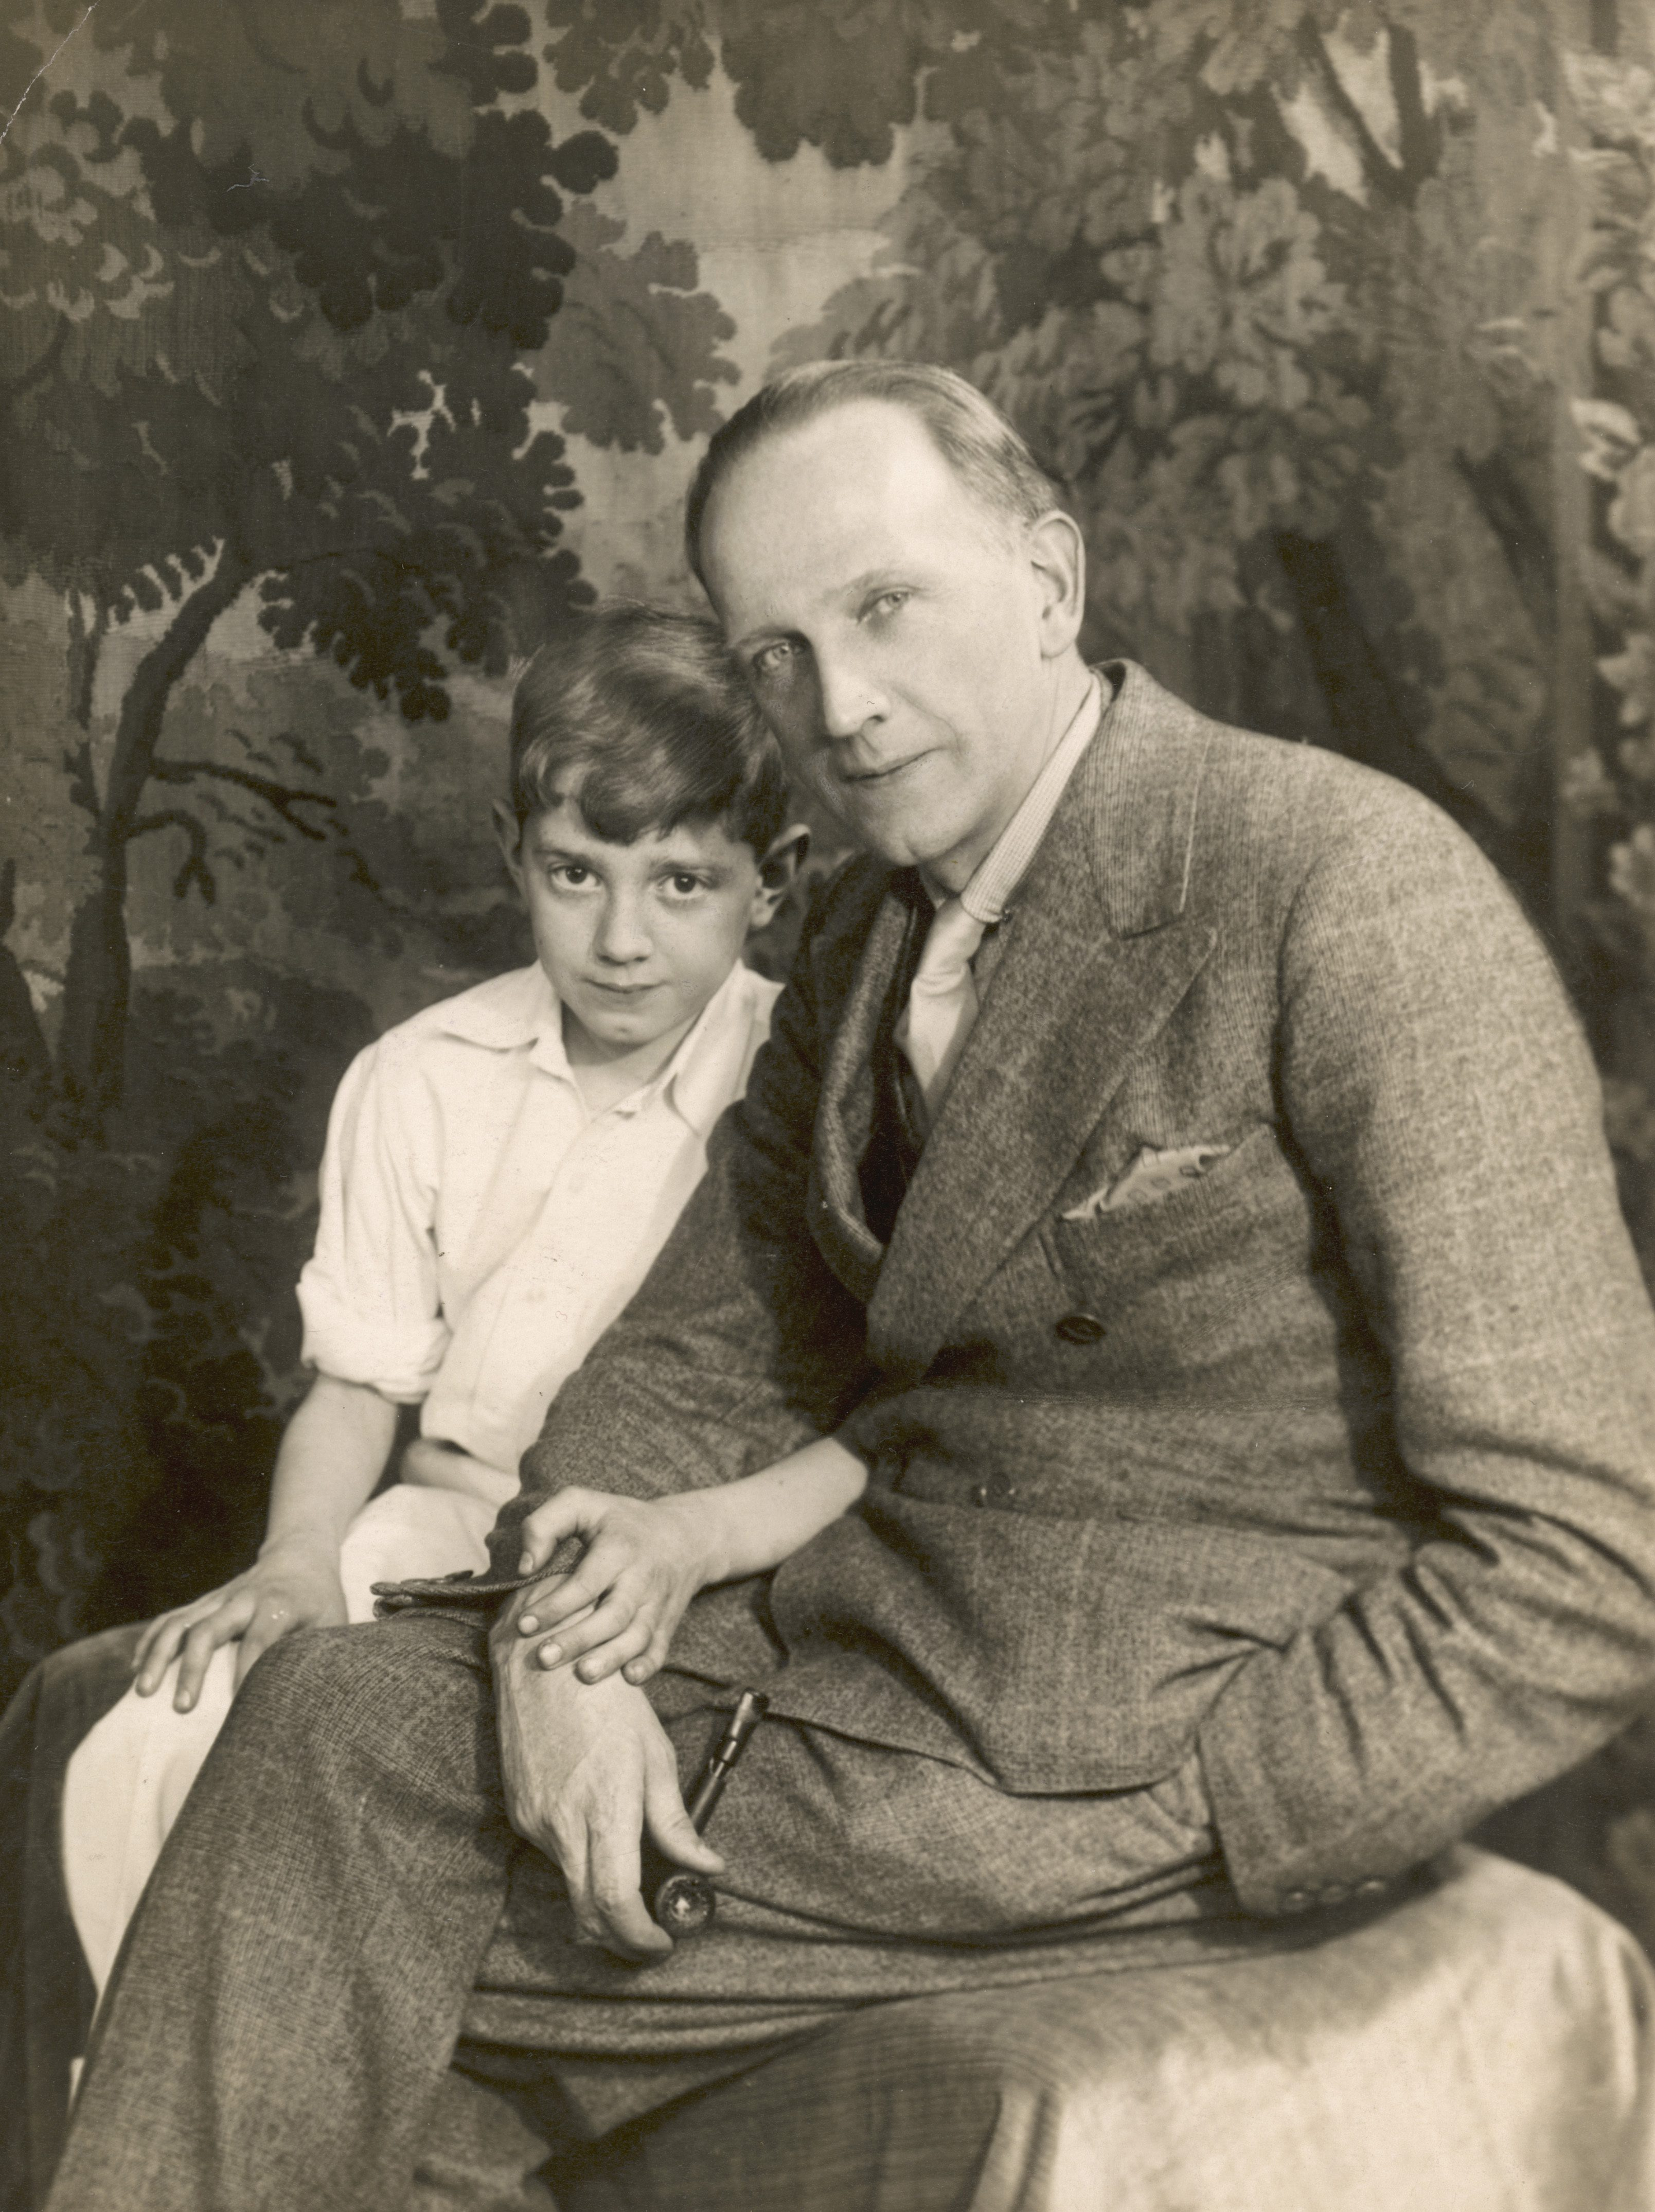 Mandatory Credit: Photo by Historia/Shutterstock (7665061cg) Alan Alexander Milne (1882 - 1956) British Author and Playwright Pictured with His Son Christopher Robin Milne (1920 - 1996) the Inspiration For His Famous Winnie the Pooh Books c.1932 Historical Collection 162